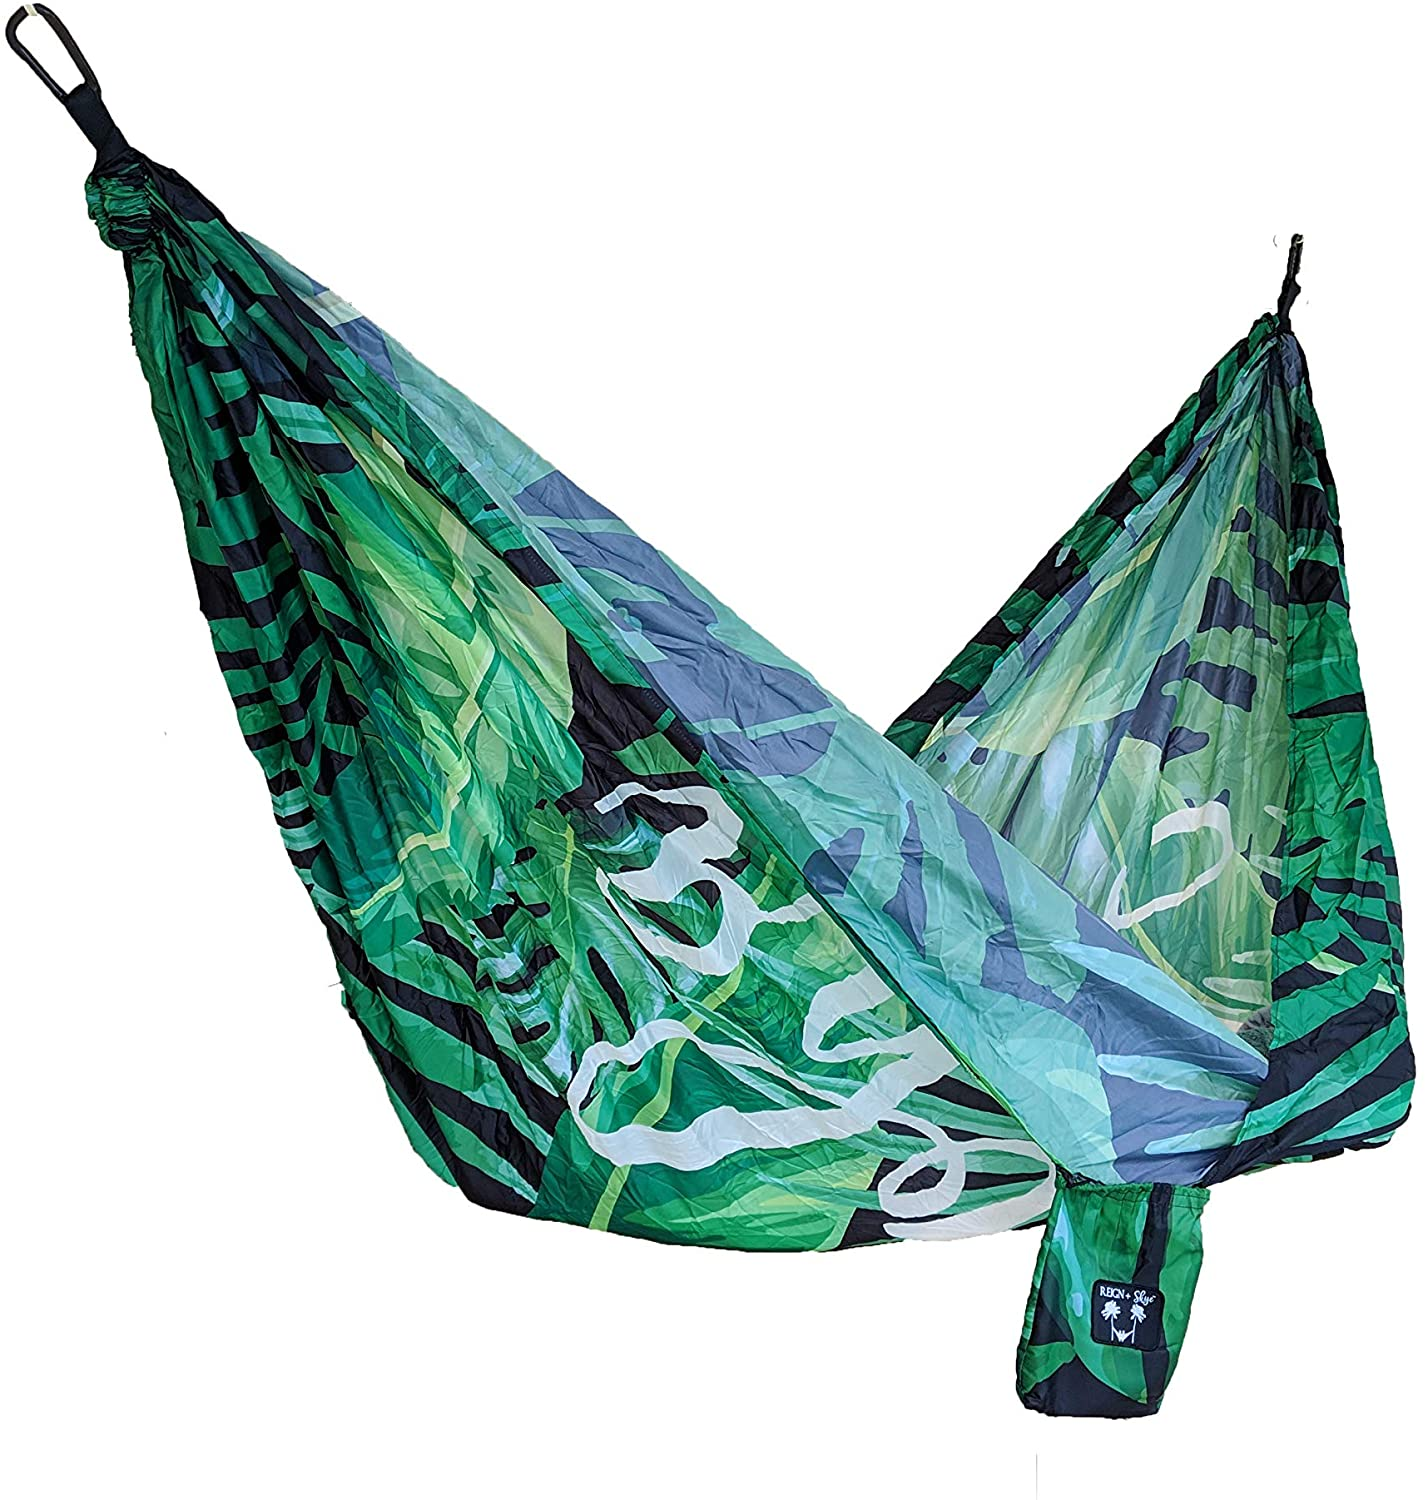 Adventure Hawaii Double Hammock- Nylon Parachute Hammock with Tropical Aloha Print for Camping, Hiking, Beach, Travel. Extra Large, Light Weight, Tree Straps Included. Reign + Skye.